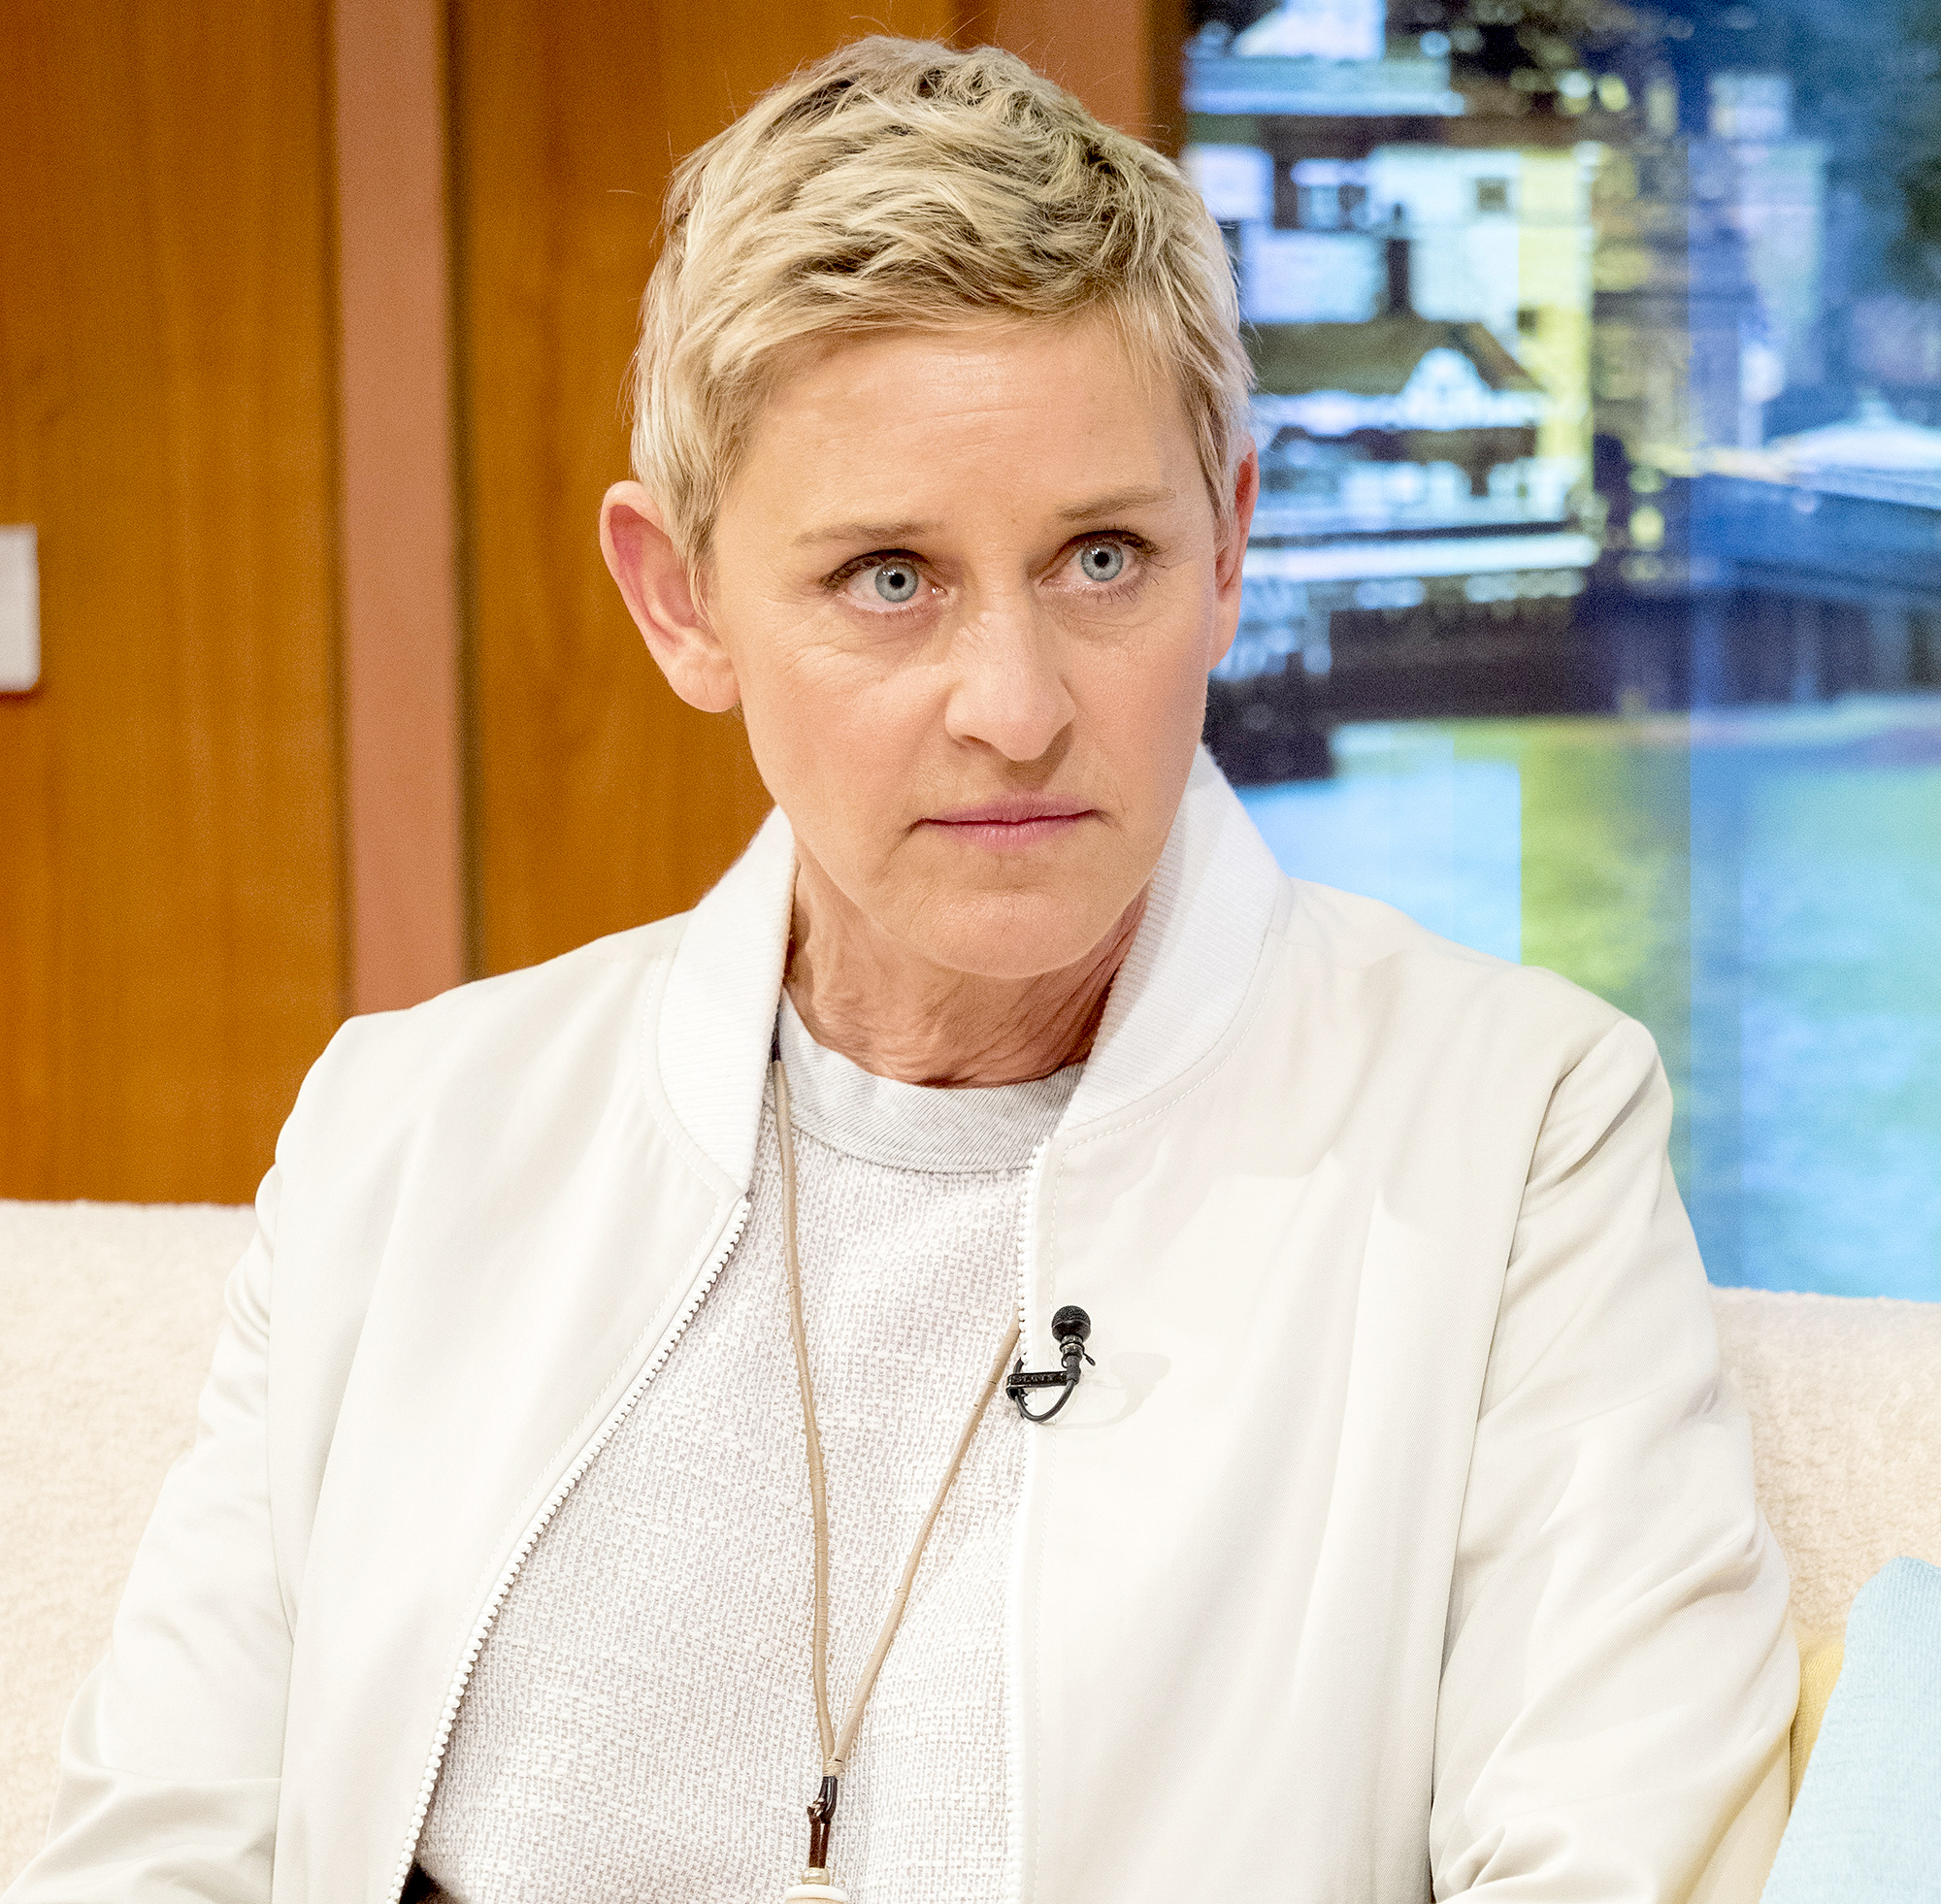 Ellen DeGeneres Show Staffers Claim Theyve Faced Racism and Fear in Toxic Work Environment